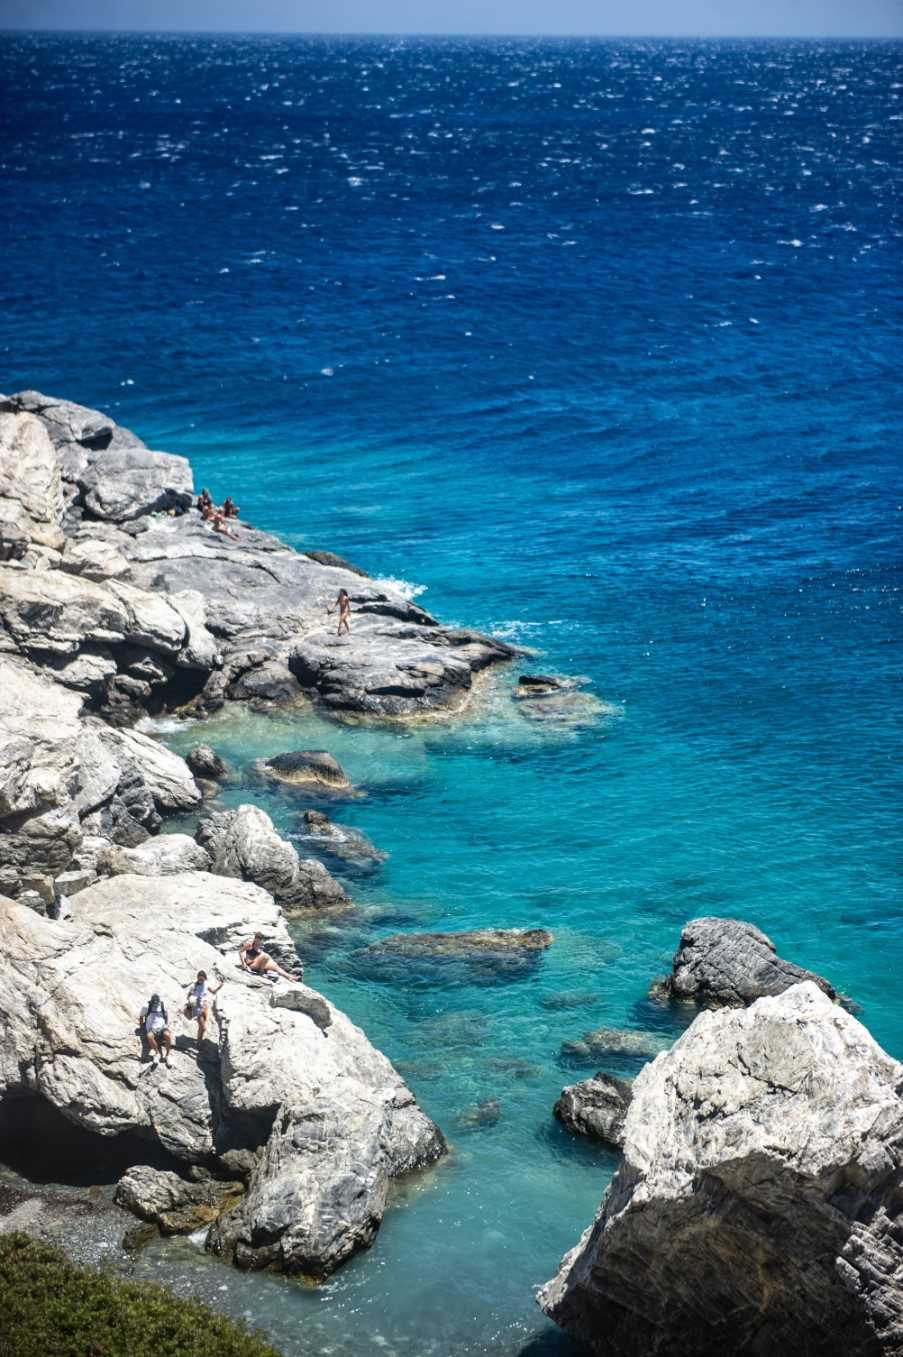 'Big Blue' beach, Chora, Amorgos